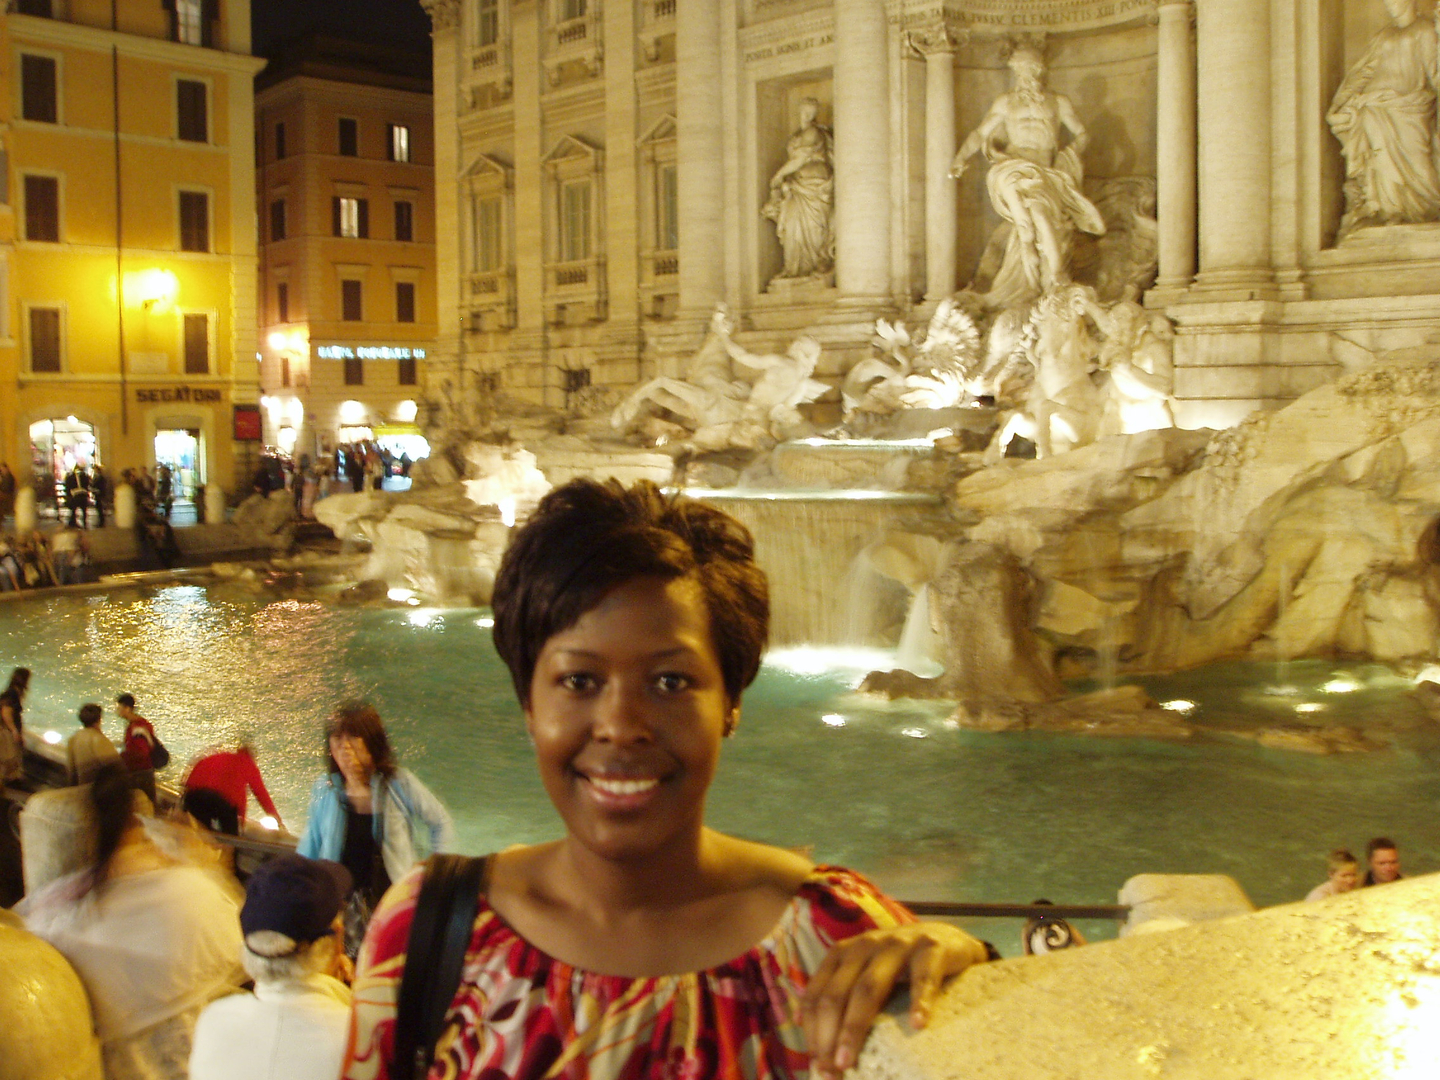 Ch 5 - The Trevi Fountain, Italy